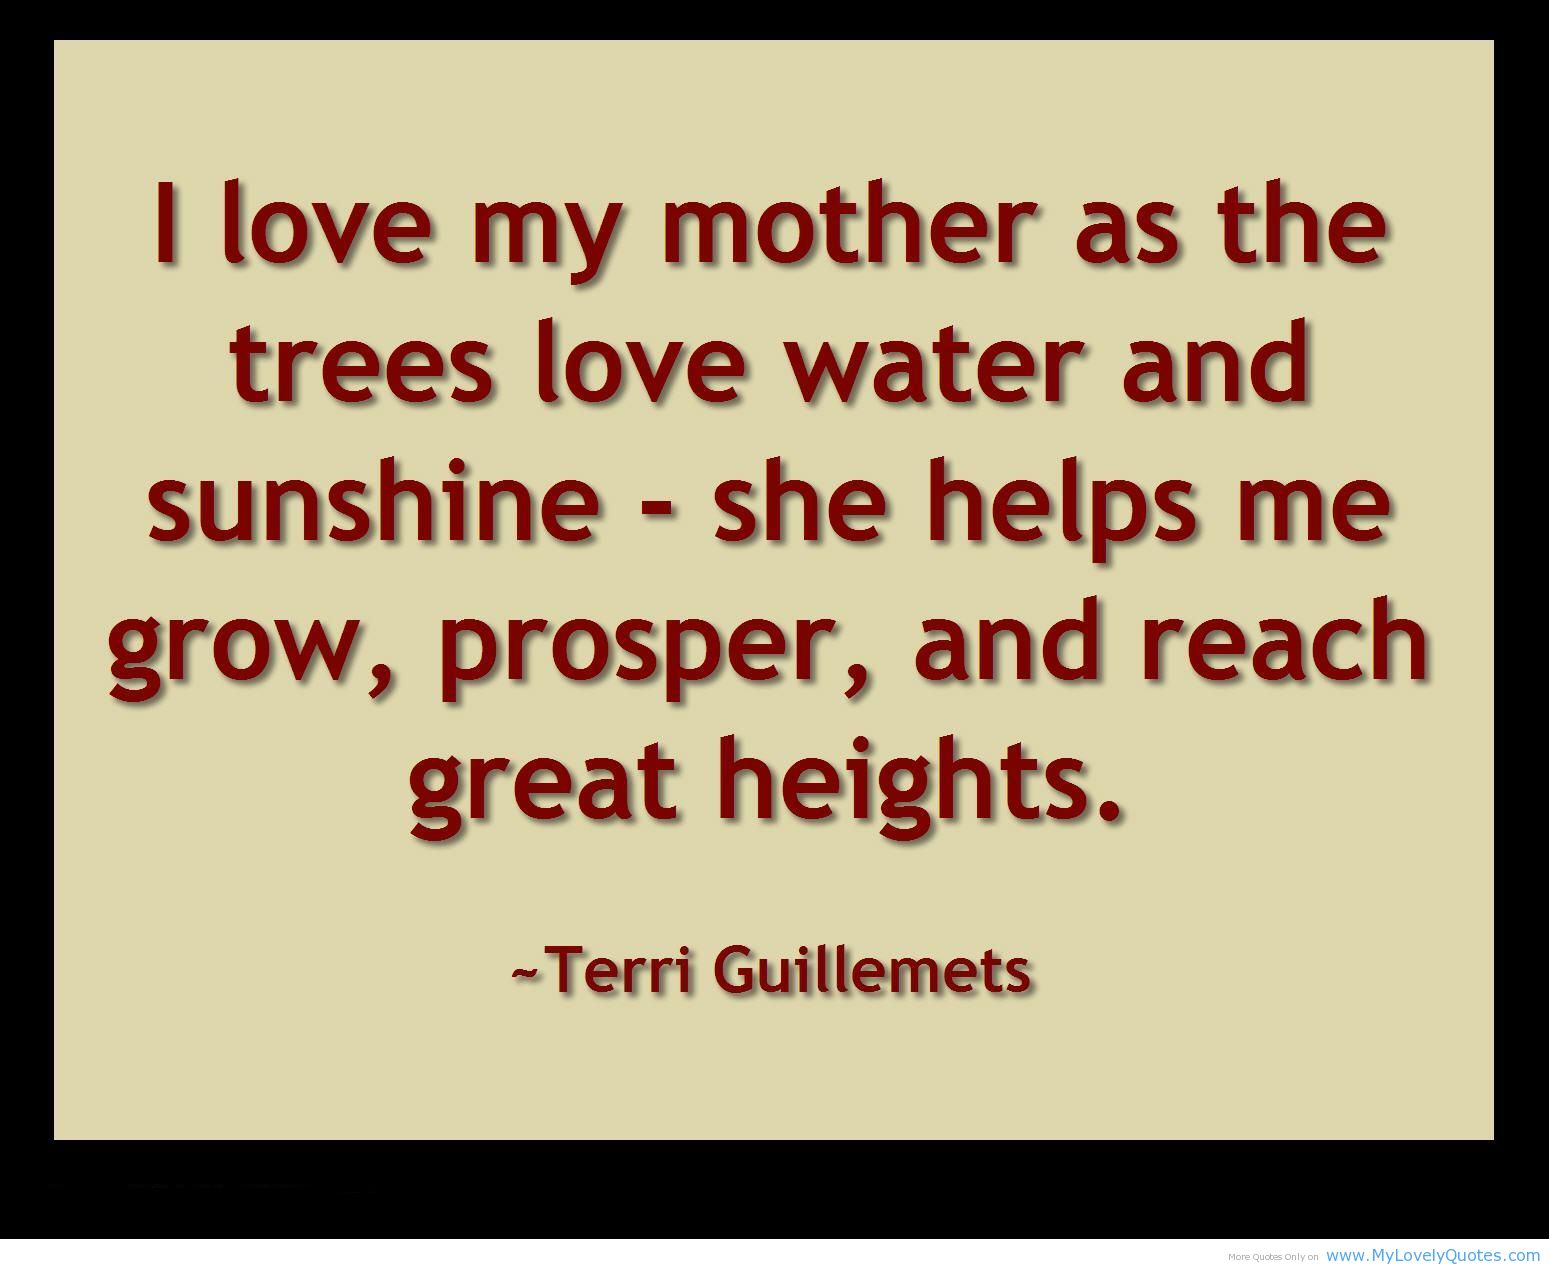 A Mothers Love Quotes 2 Happy Mother's Day  Speak Happiness